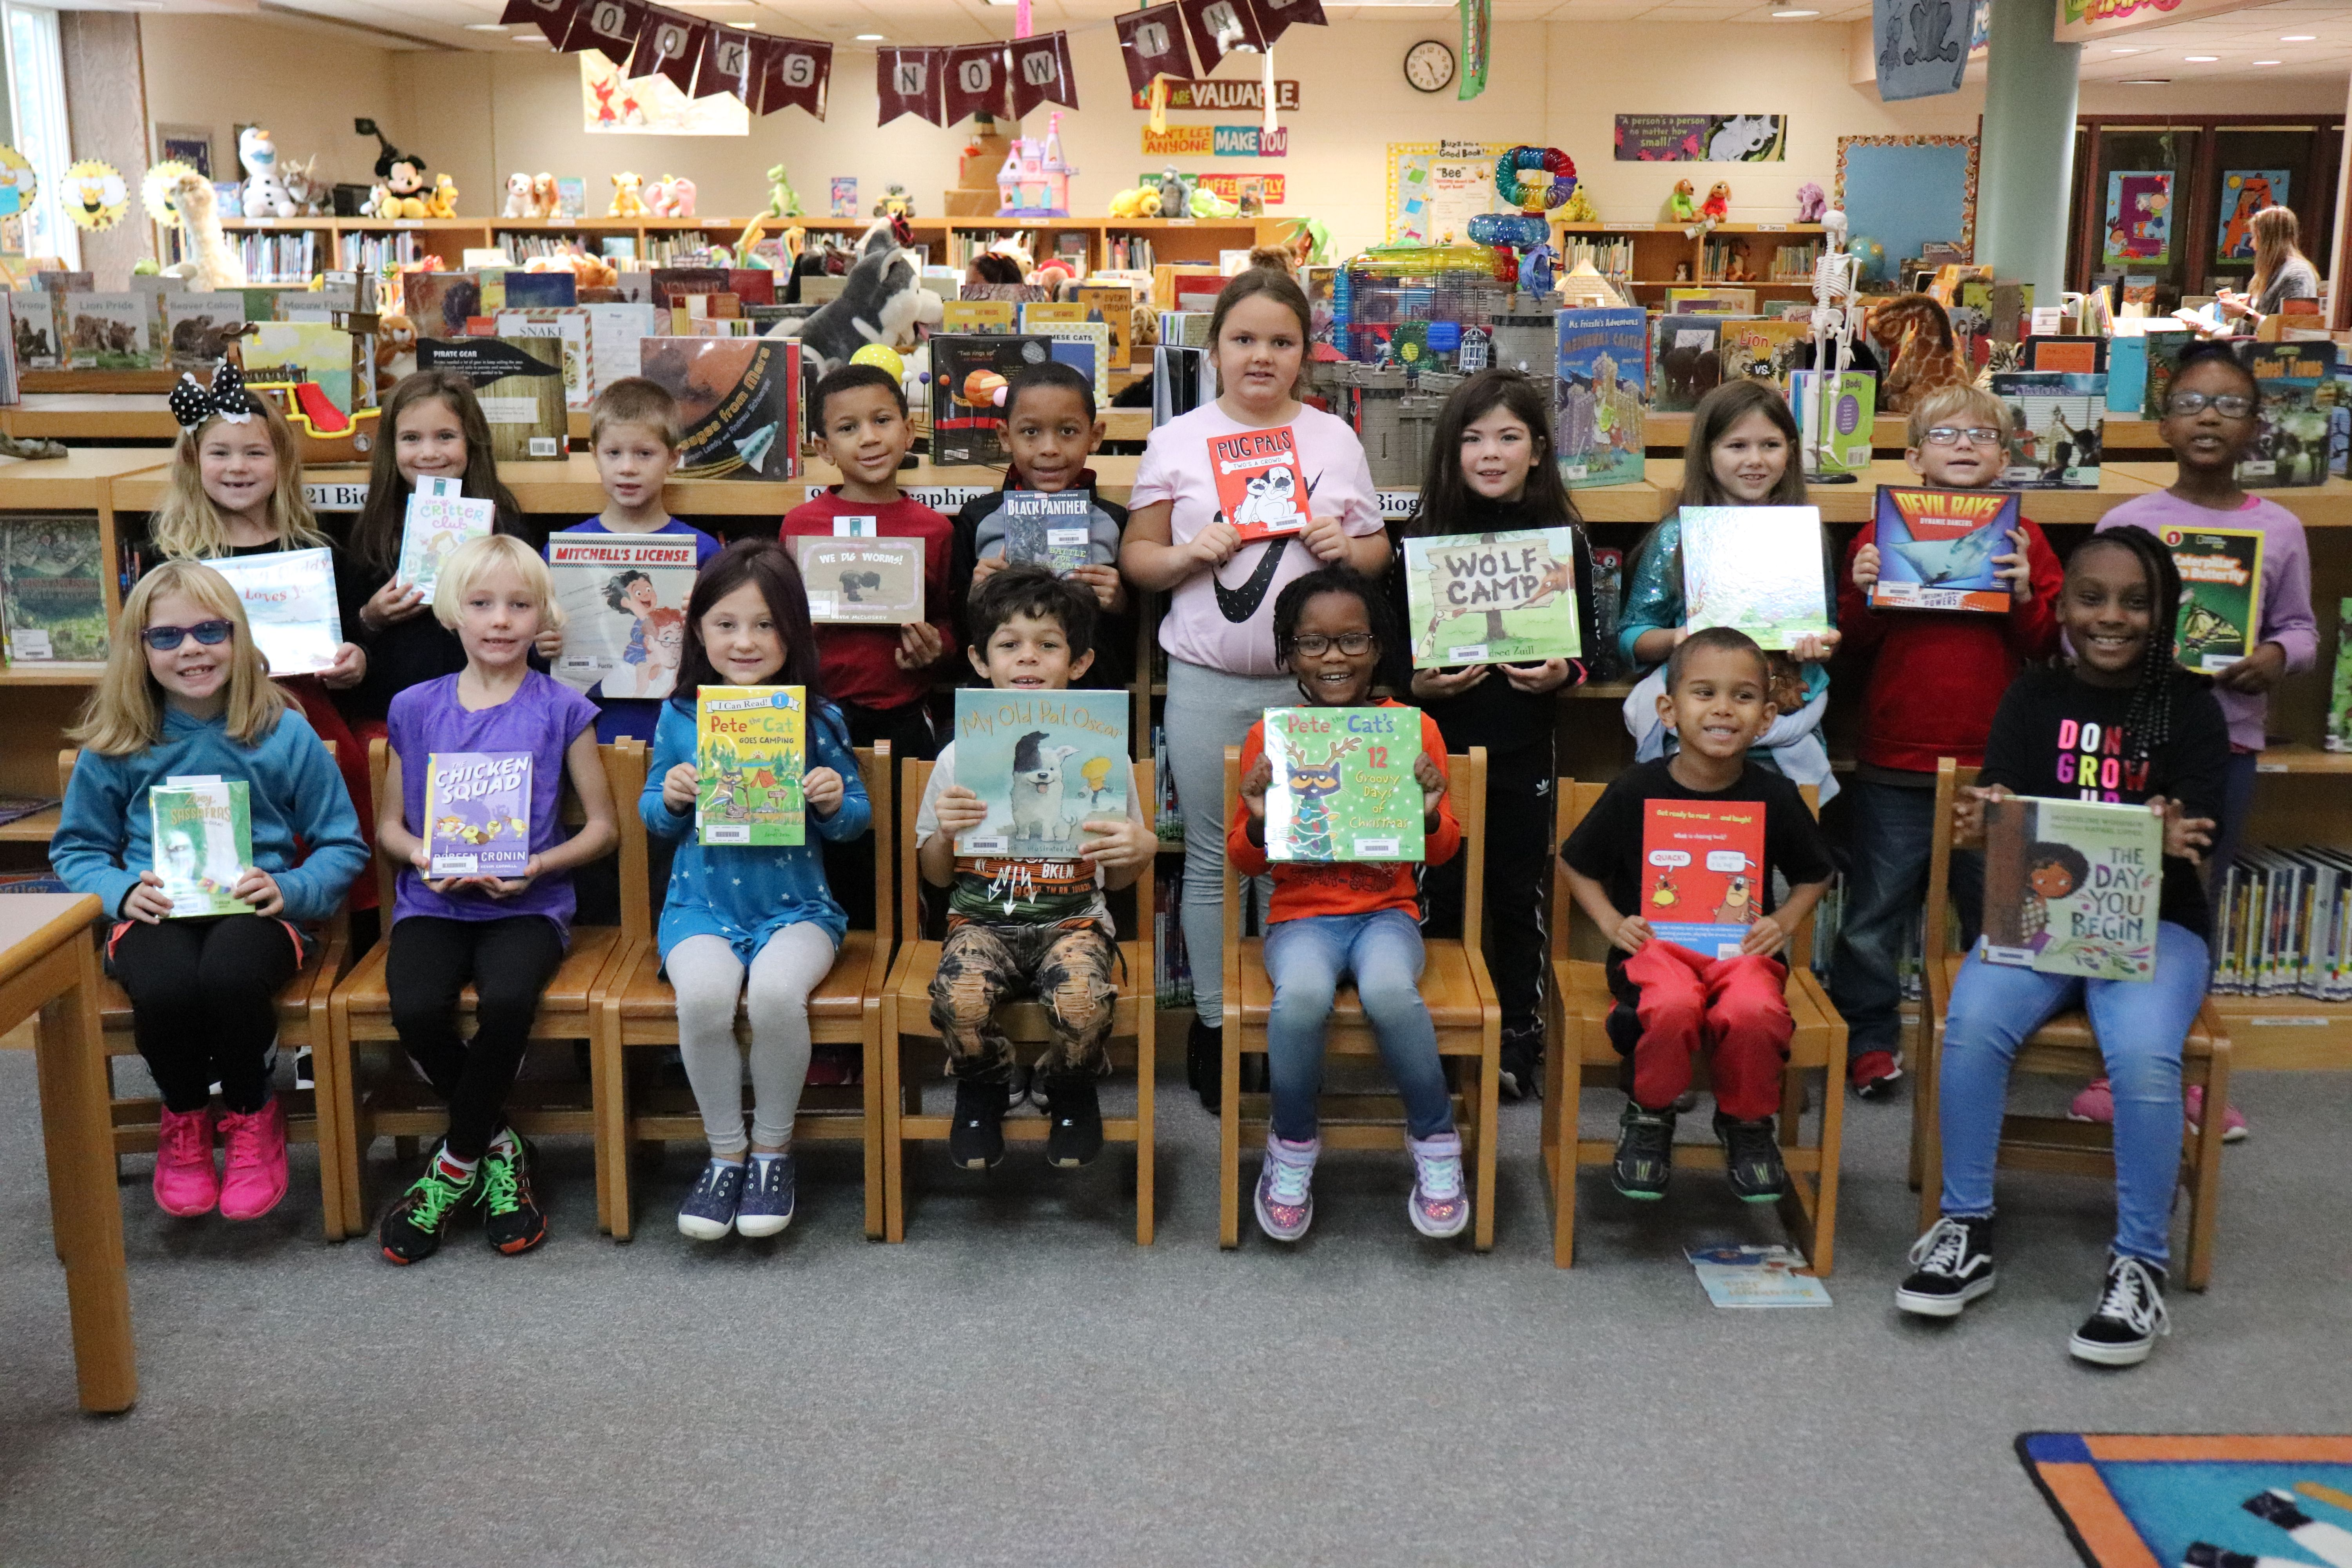 WASDEF Awards 122 Books to Students, Elementary Libraries